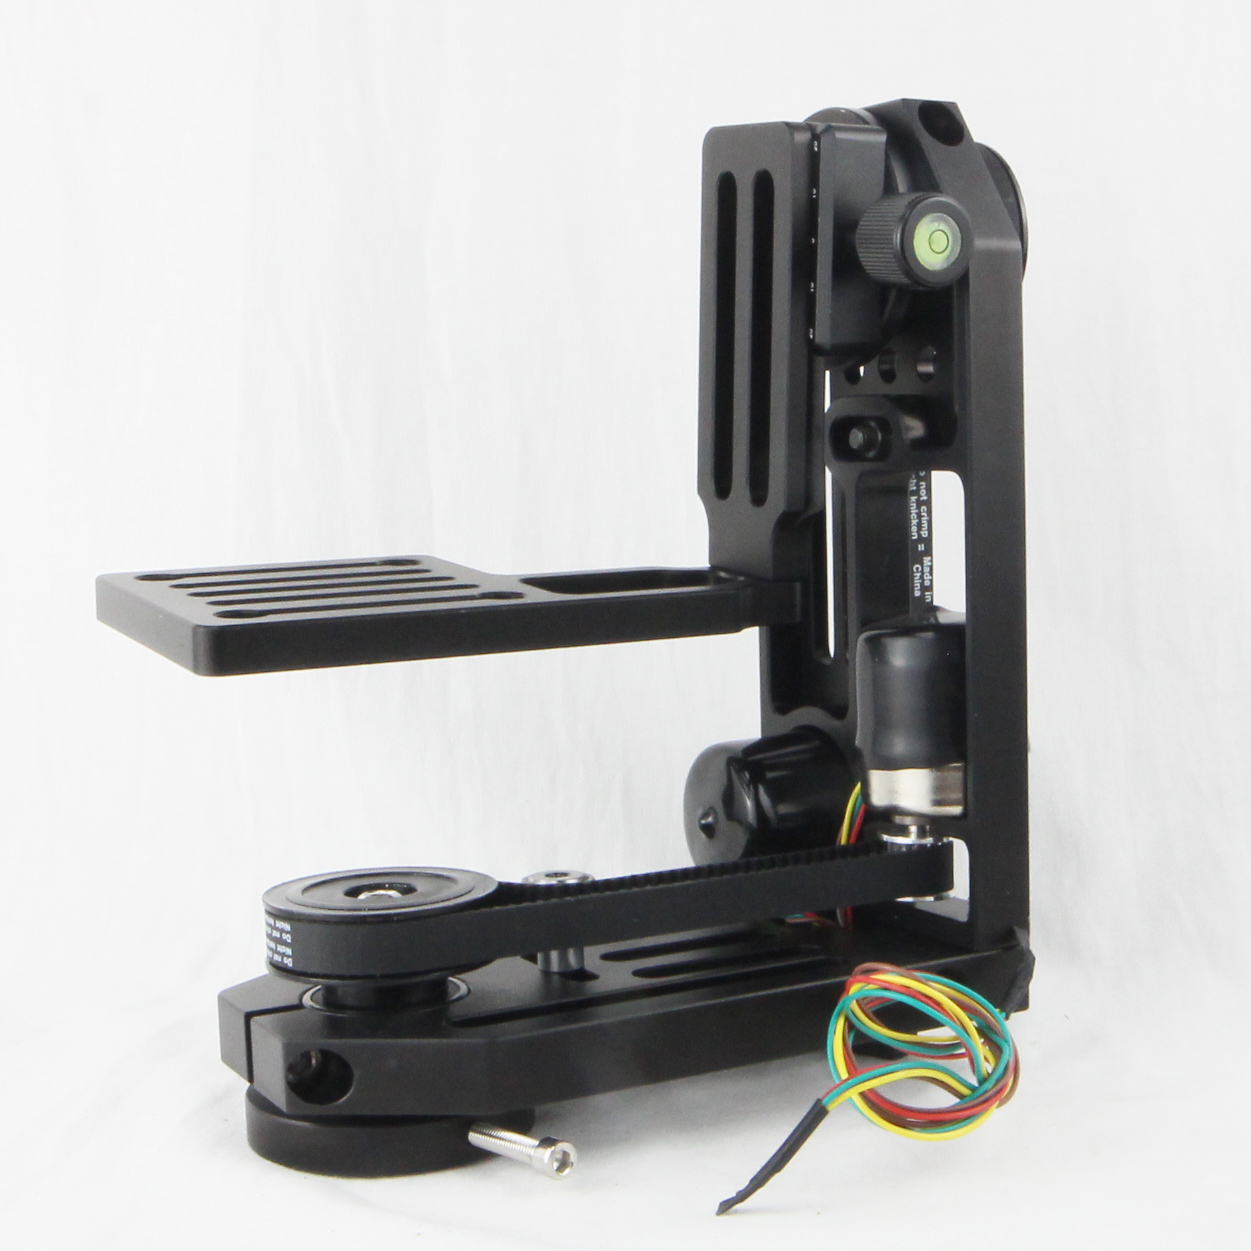 PT 0SM MOCO motion control pan tilt head with 2 stepper motors without controller for stop motion in Photo Studio Accessories from Consumer Electronics